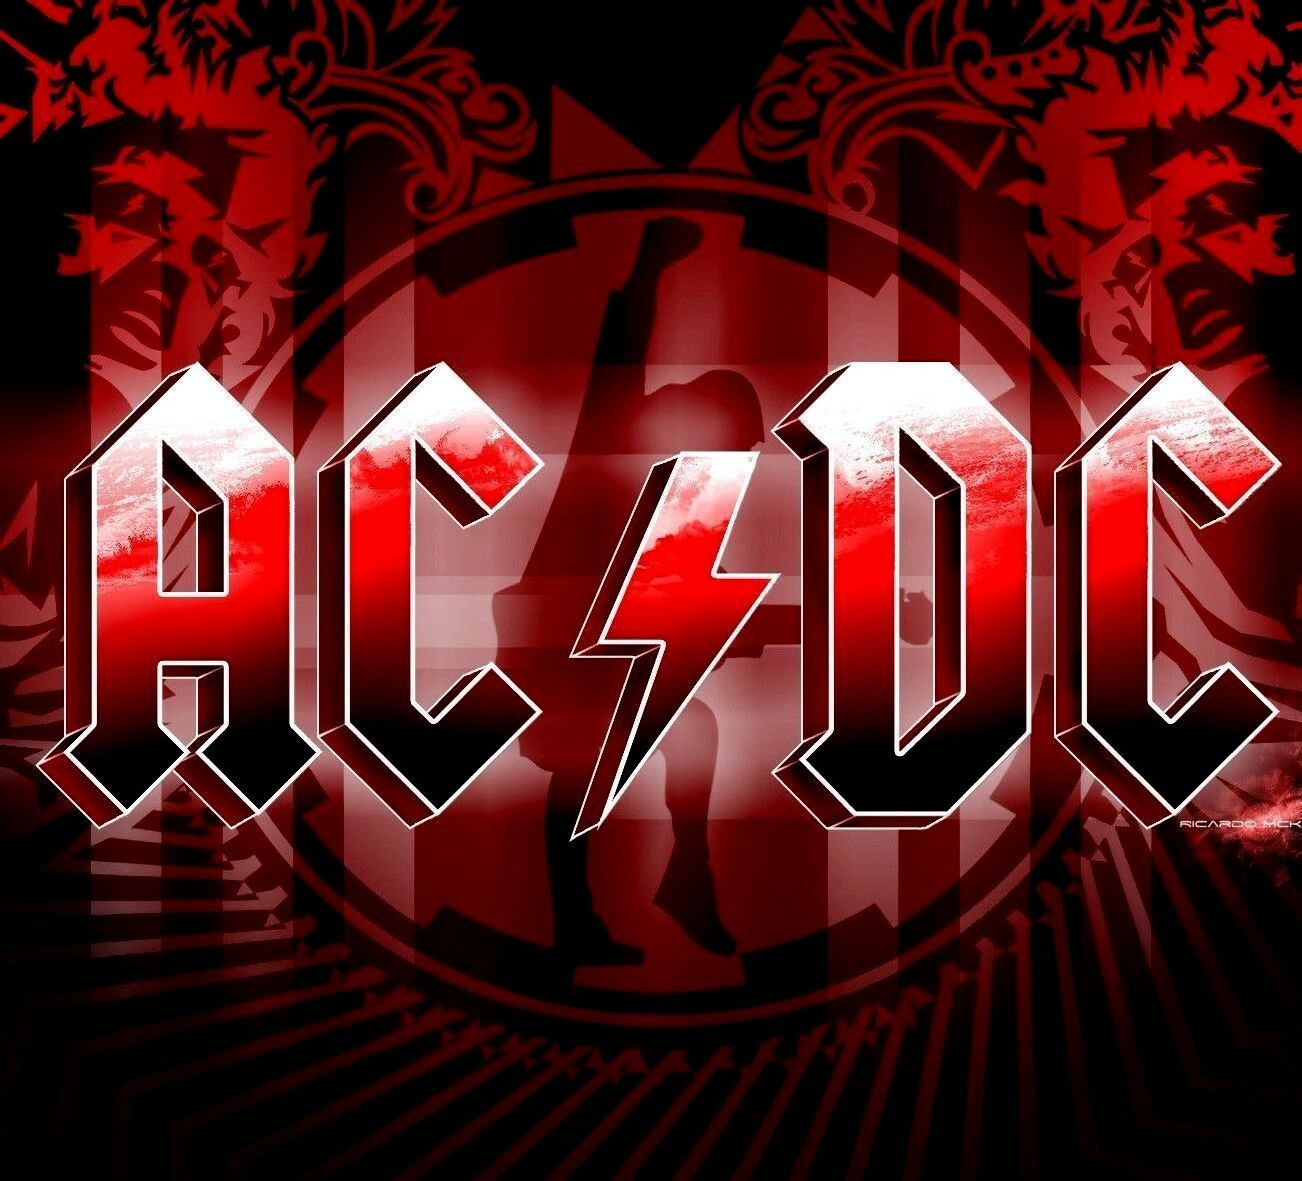 Купить 2CD AC/DC - Greatest Hits Collection Music 2CD Hell's Hits by AC/DC